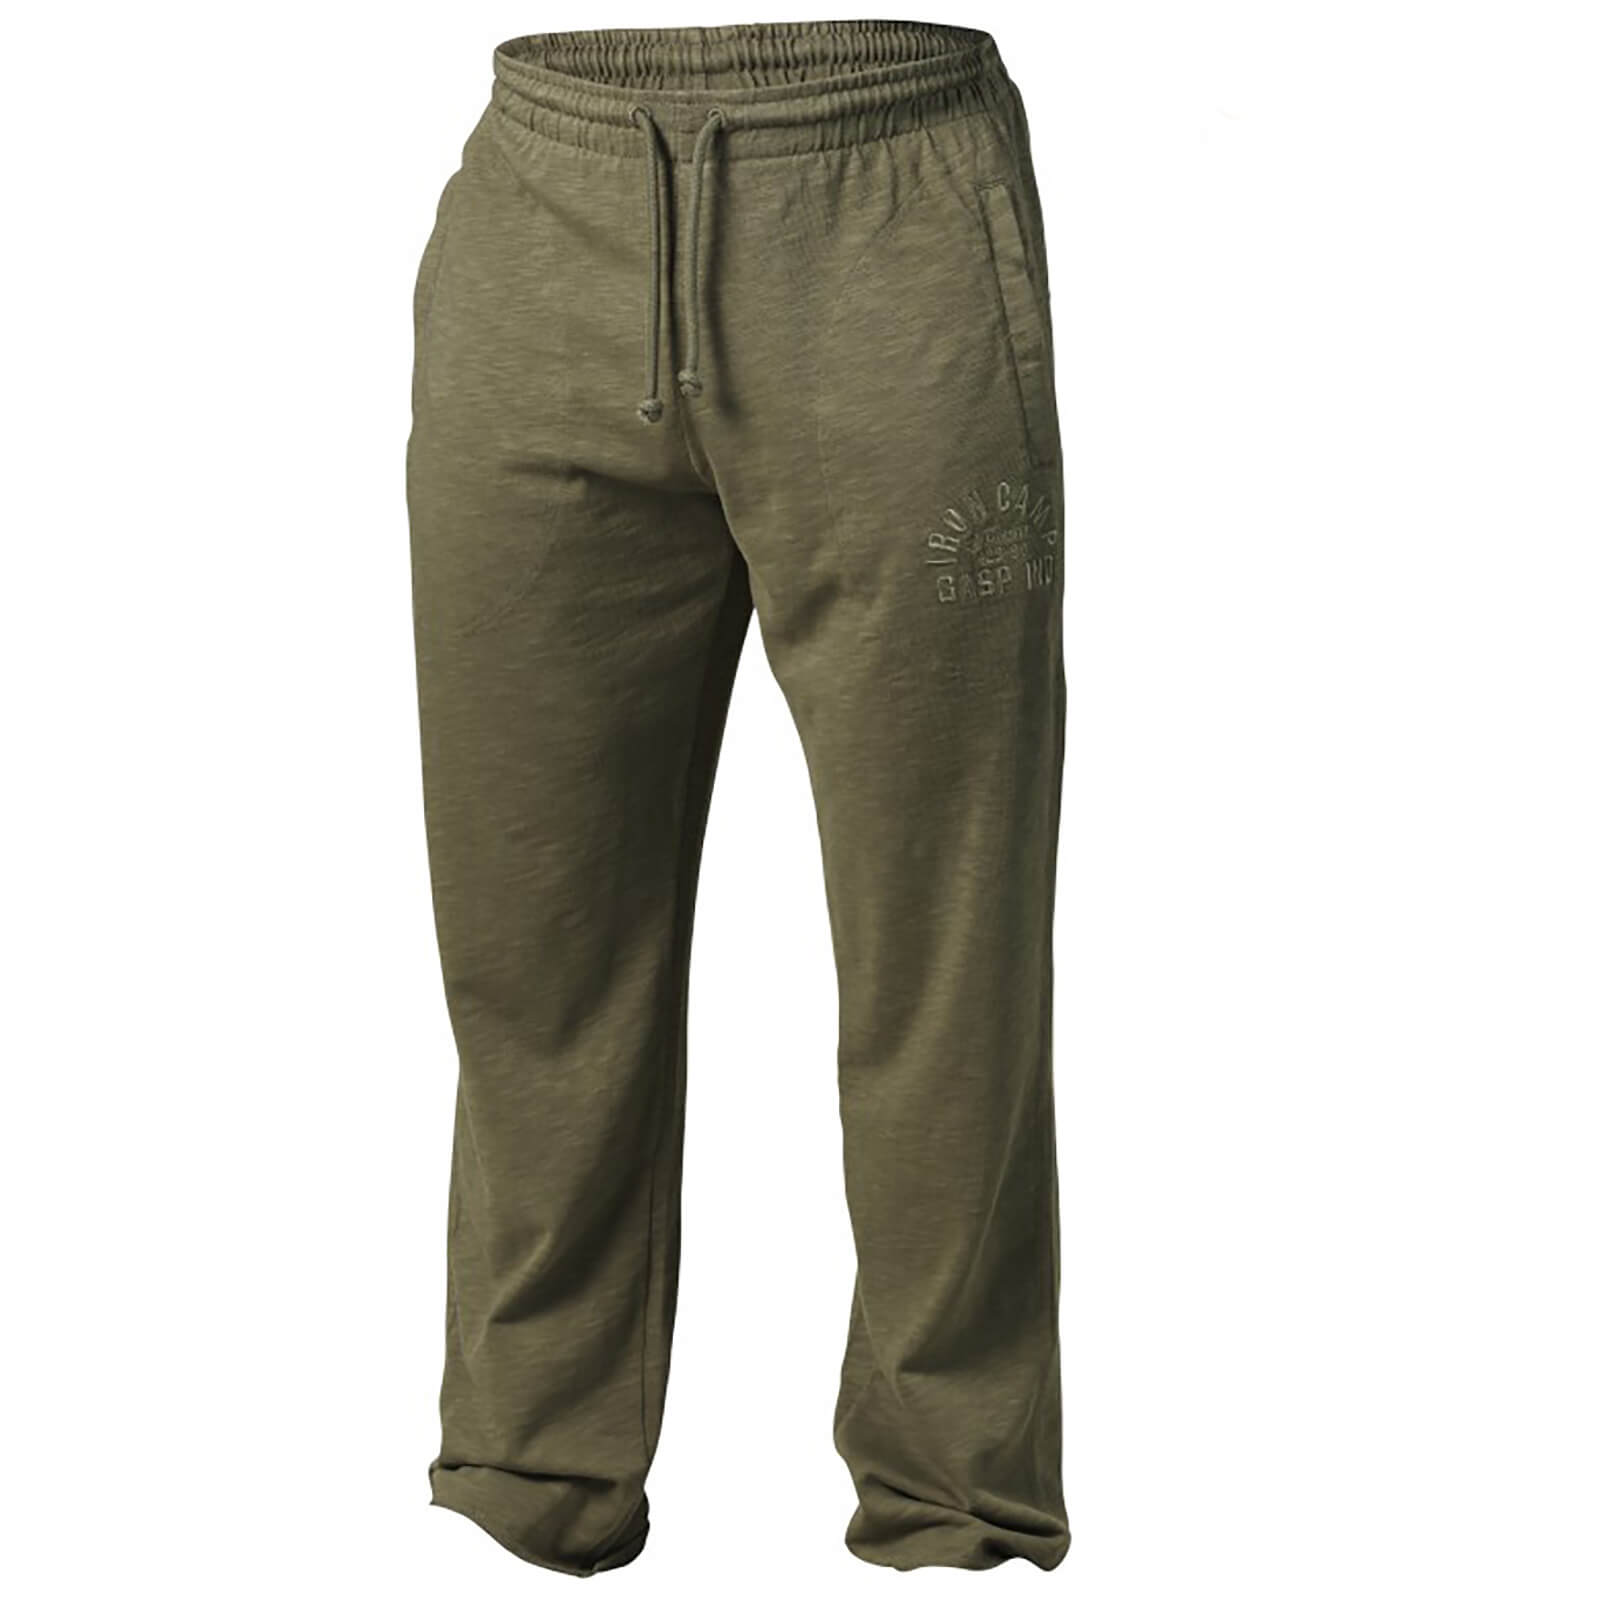 GASP Throwback Street Pants - Wash Green - S